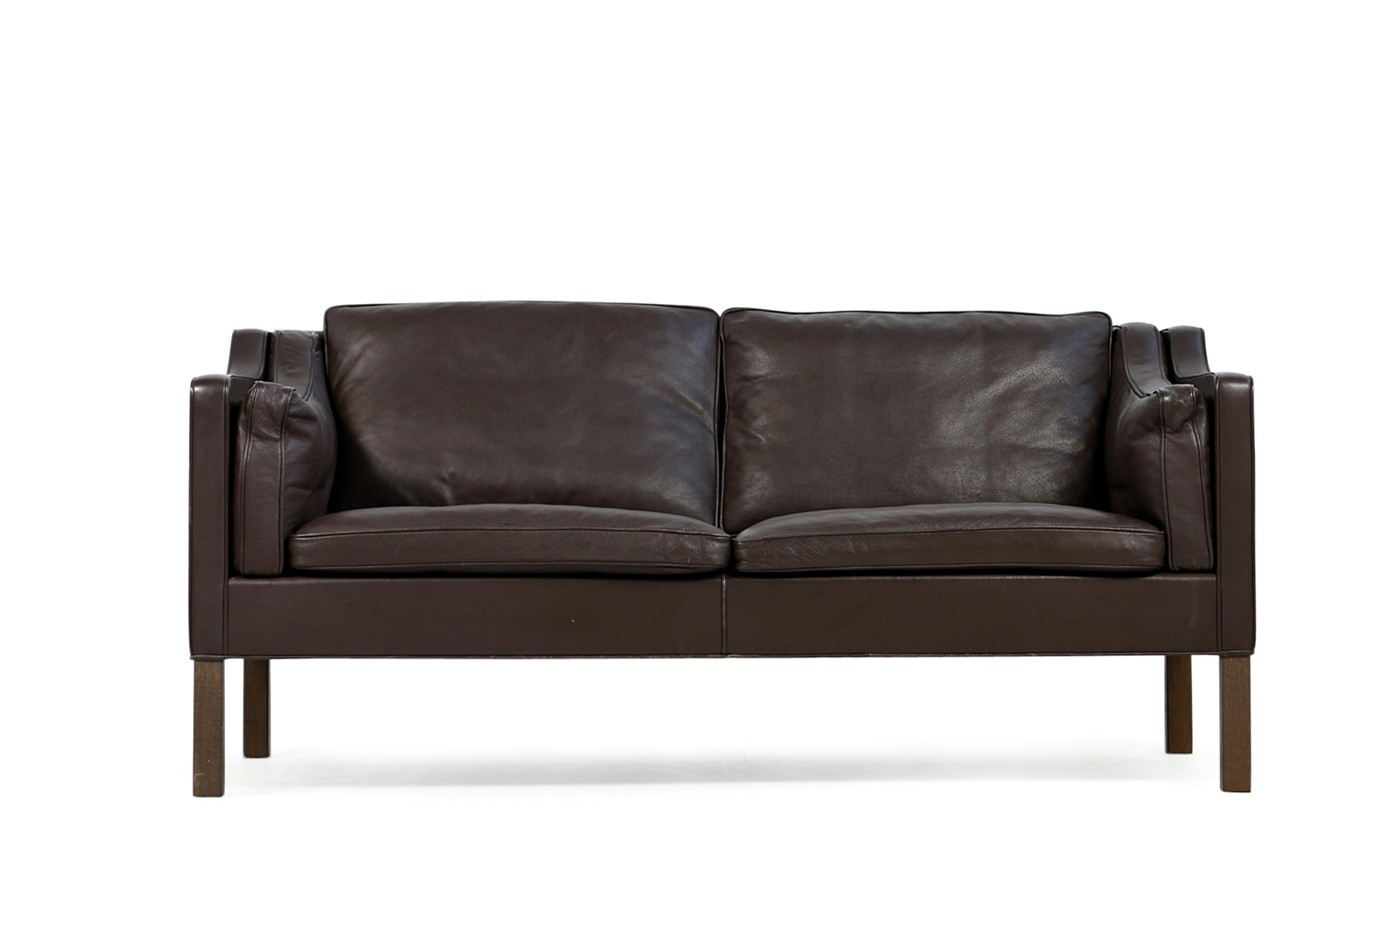 Sofa 60er Stil Brown 1960s Børge Mogensen Leather Sofa Model 2212